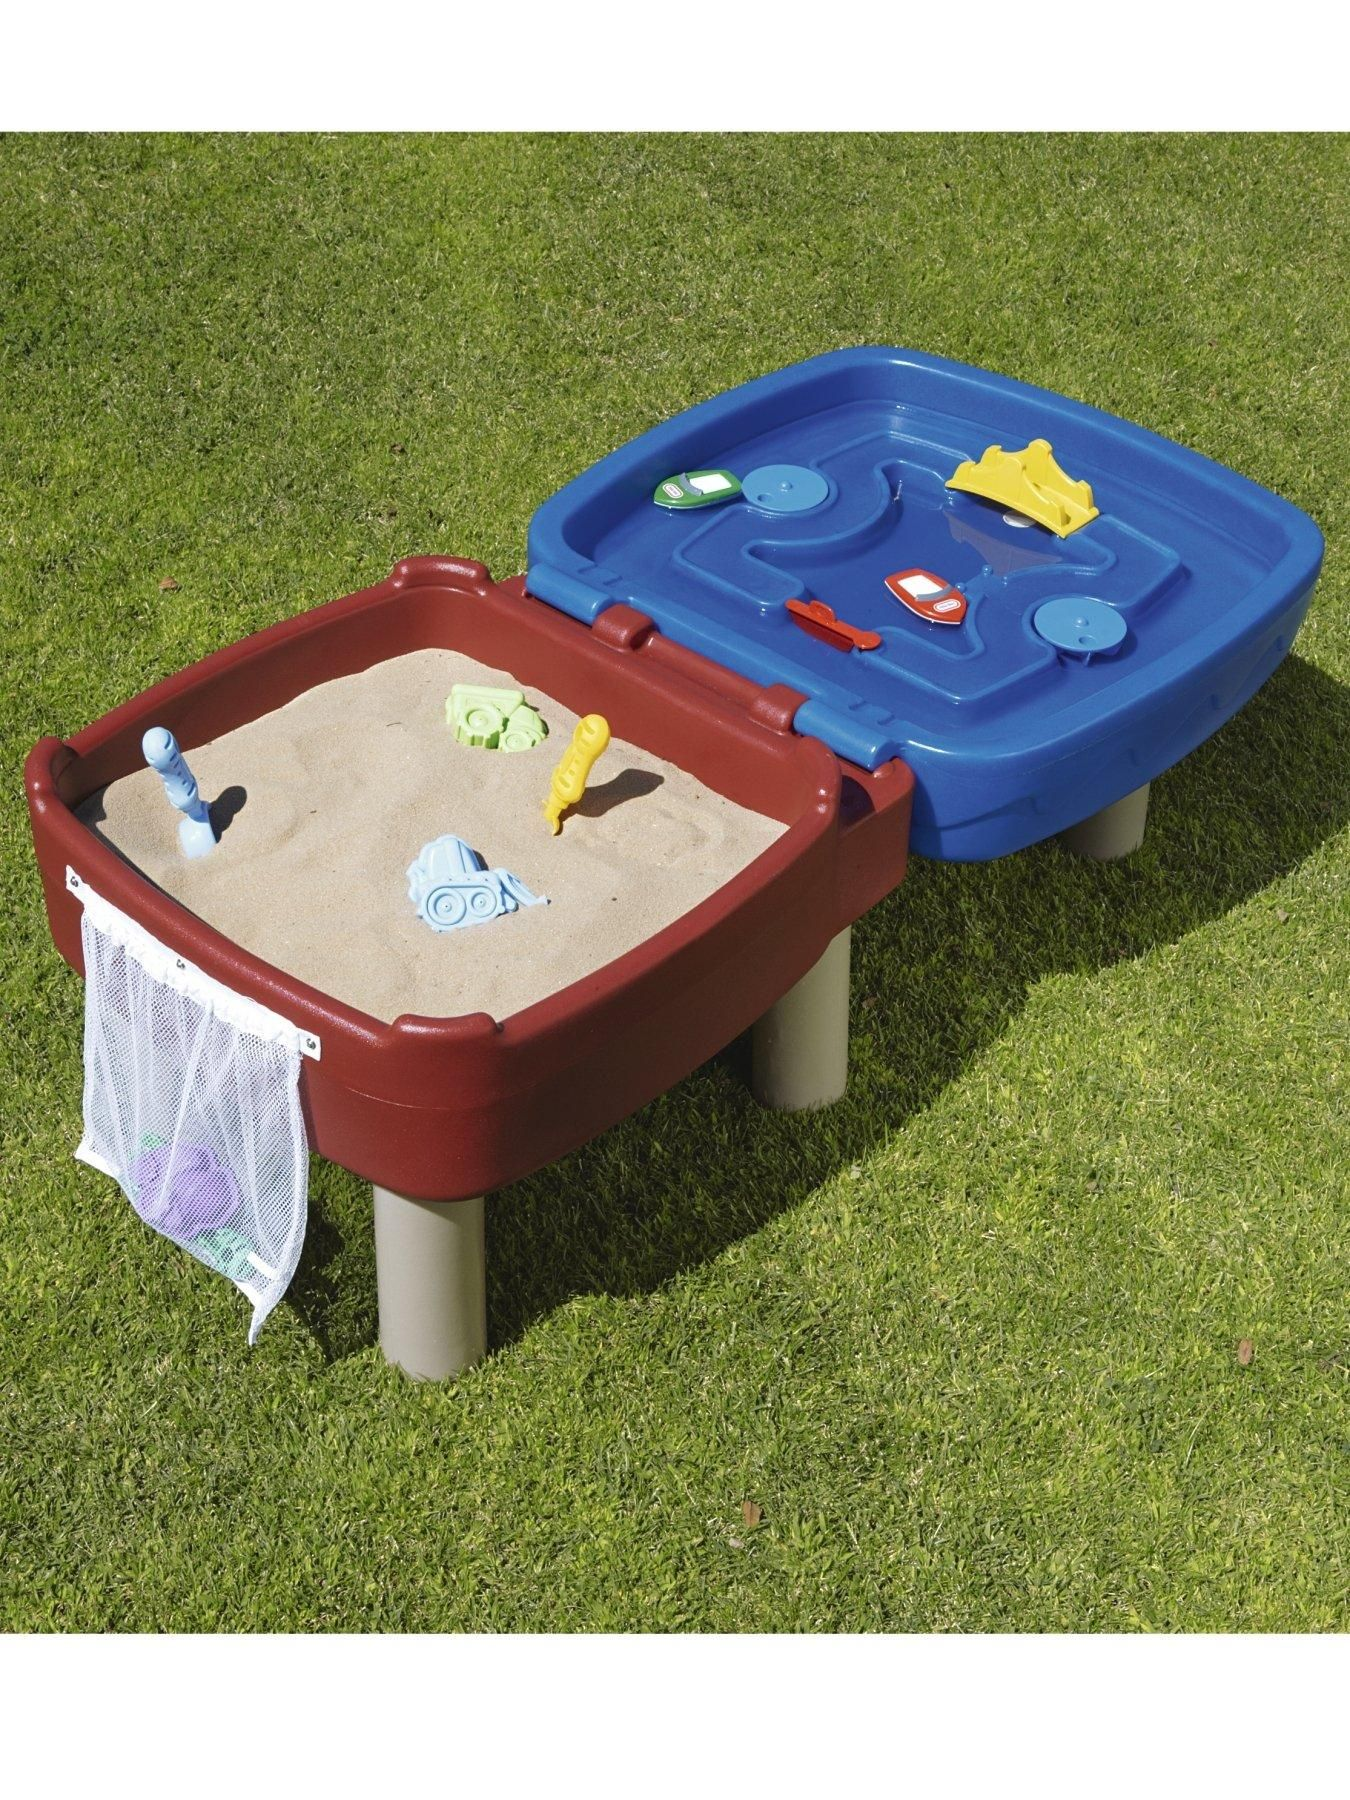 Little Tikes Sand and Water Table Sand and water table